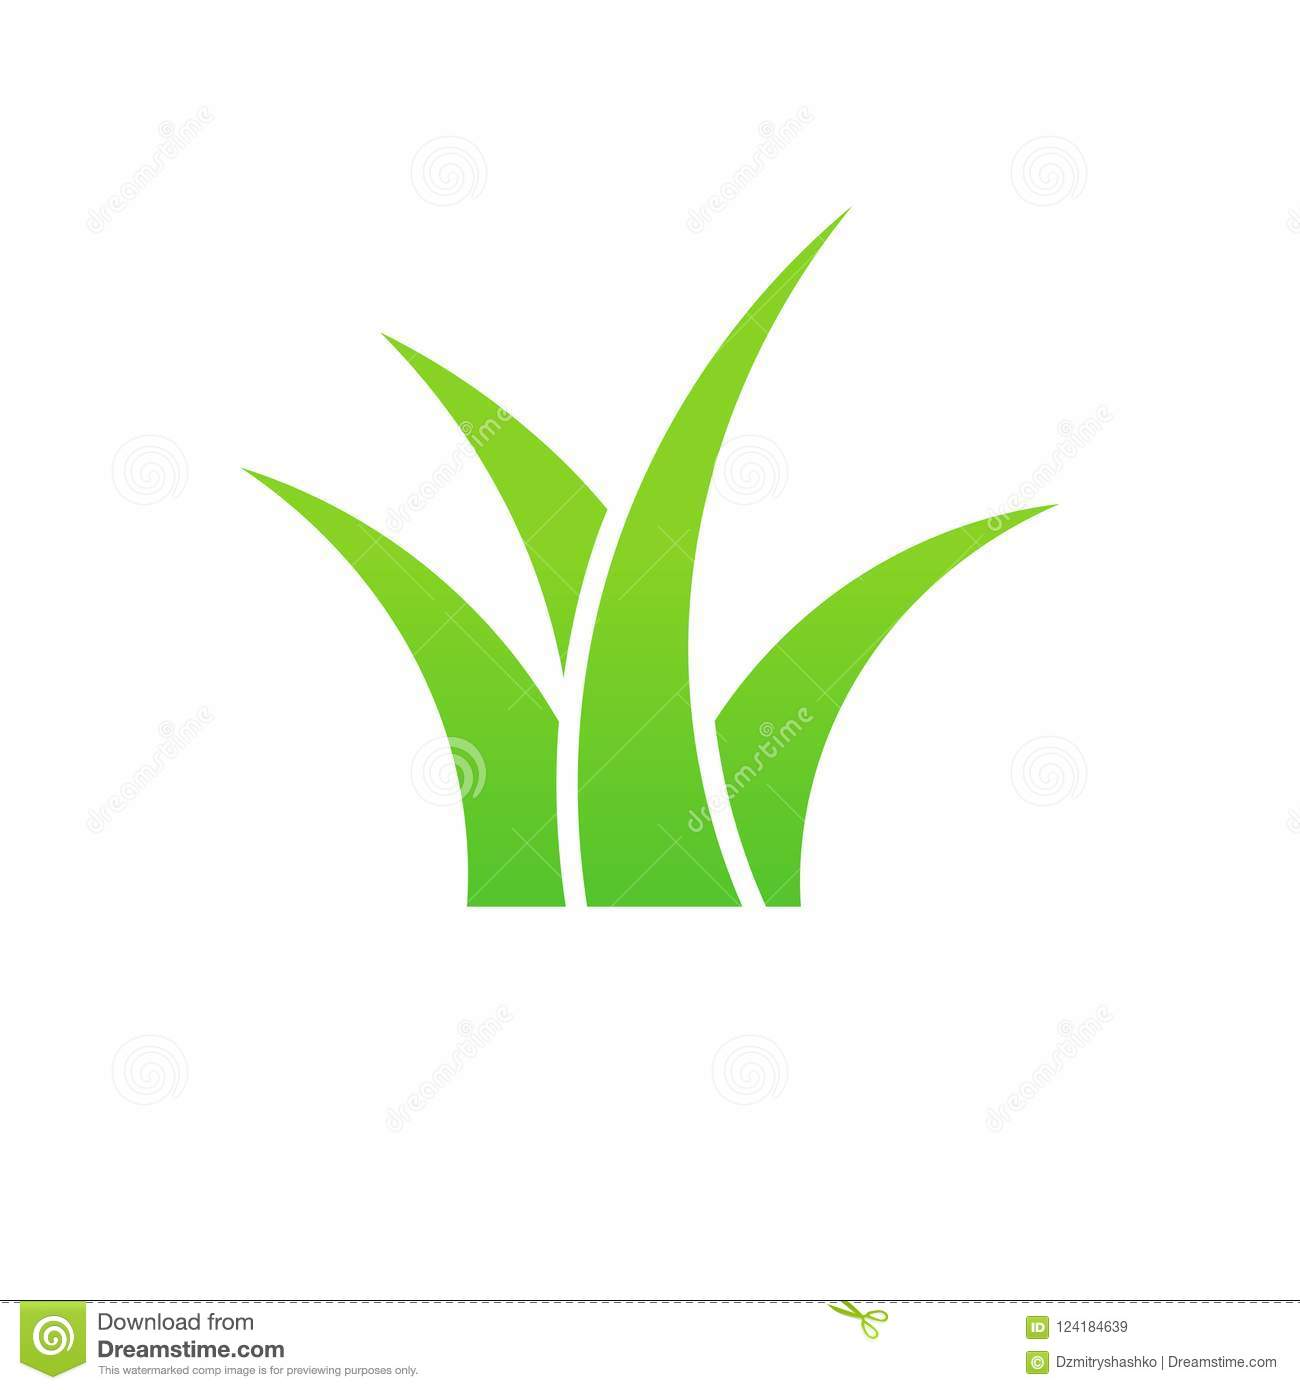 grass vector icon stock vector illustration of icon 124184639 https www dreamstime com grass icon lawn care clipart isolated white background grass vector icon image124184639